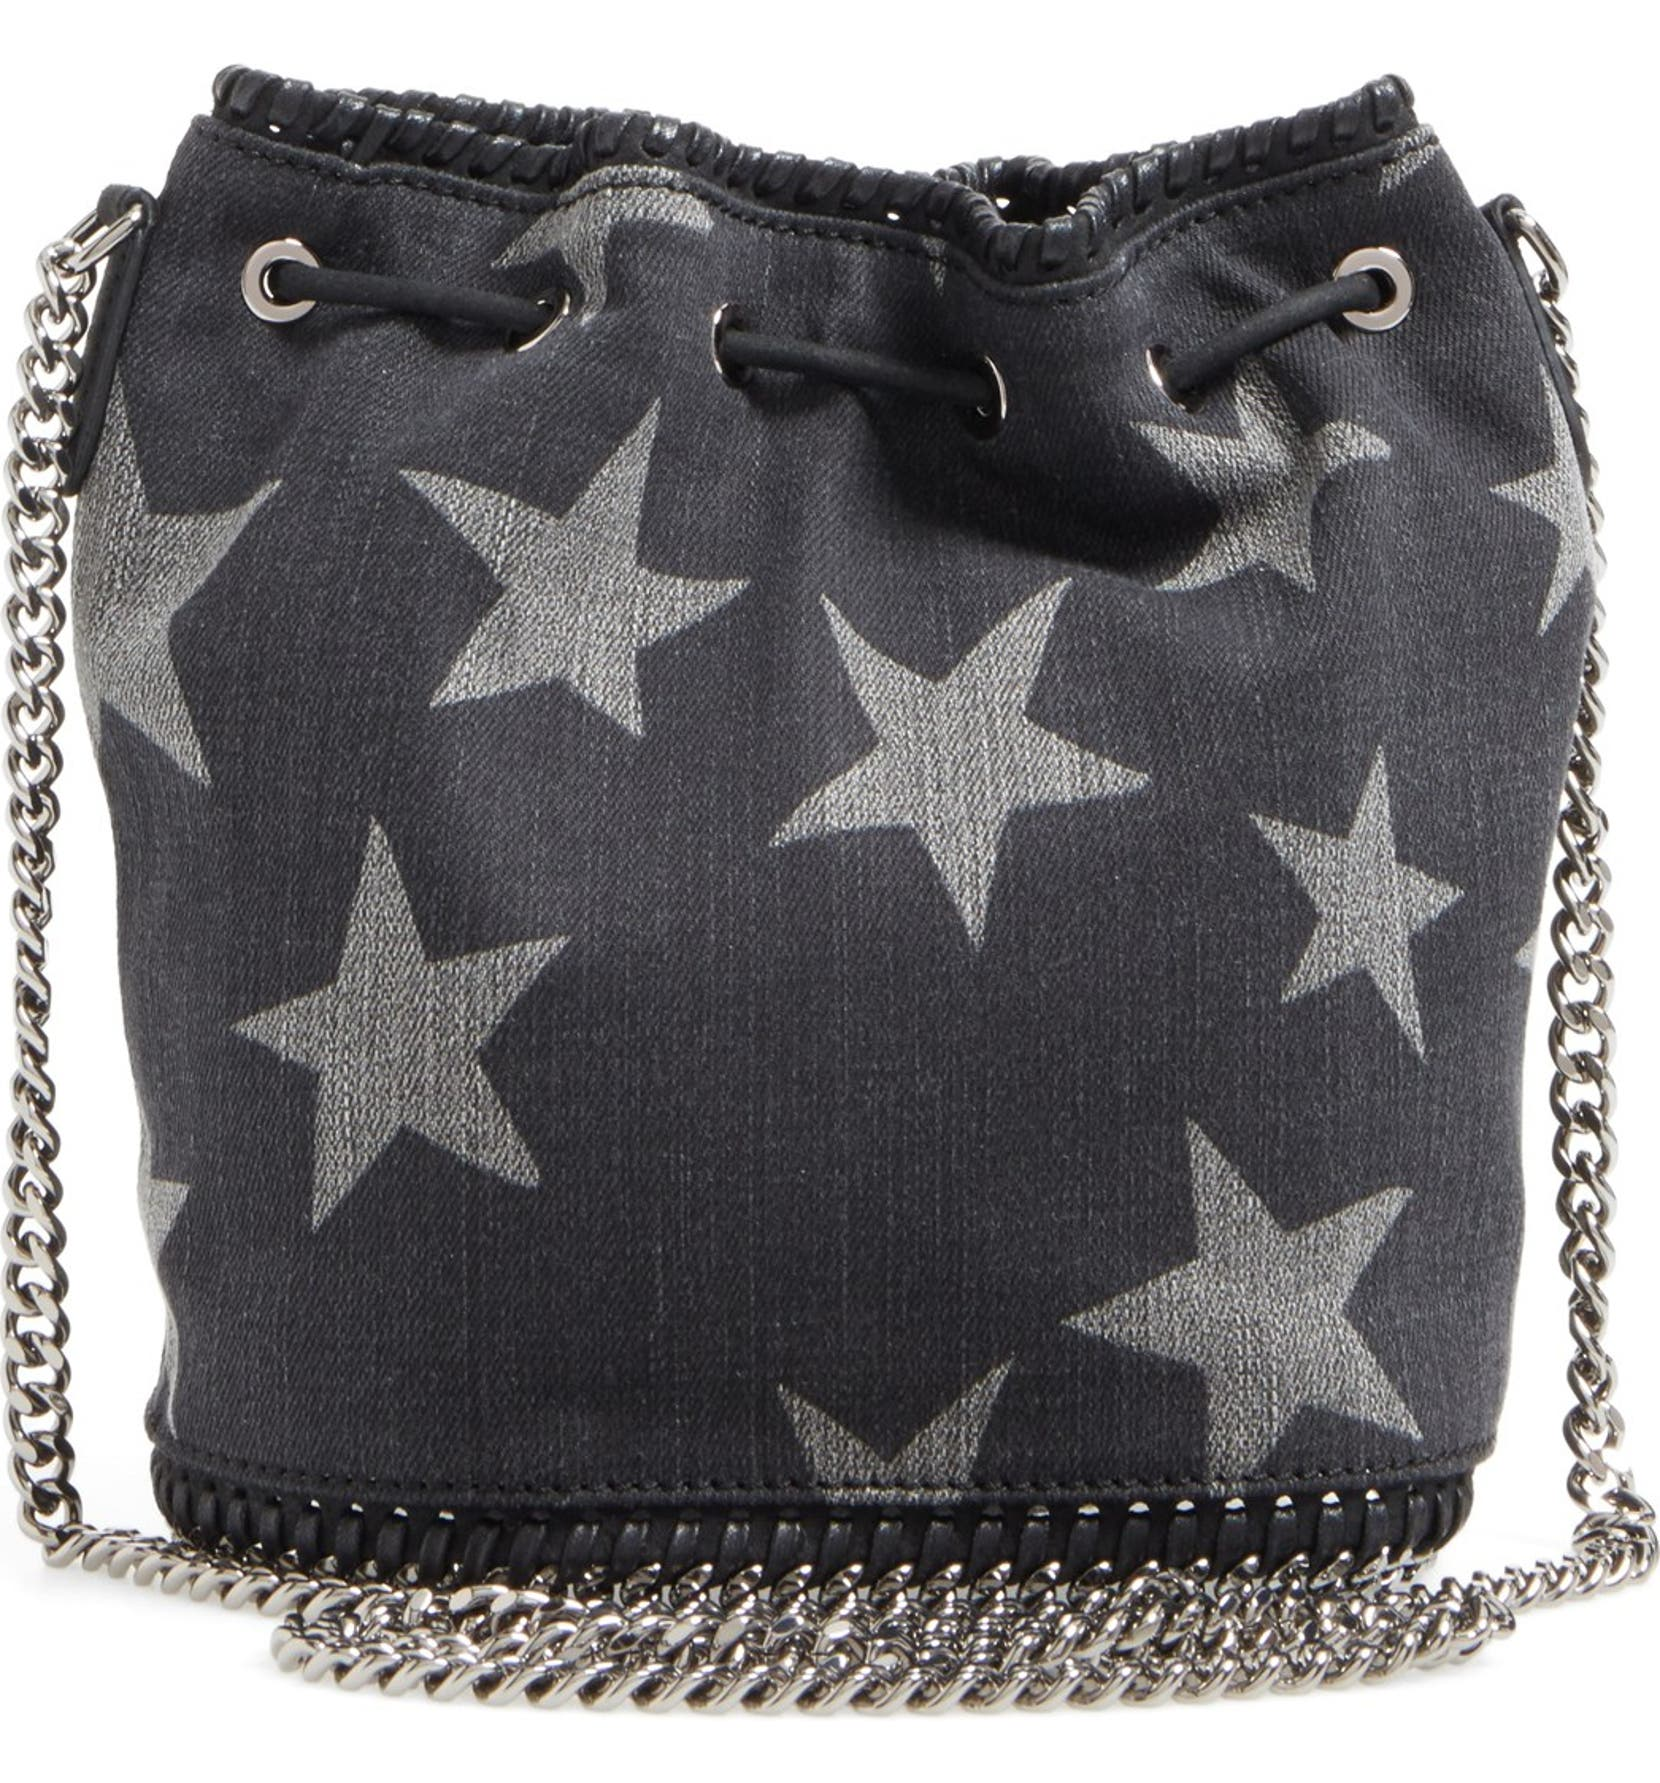 Stella McCartney  Falabella  Star Print Denim Bucket Bag  cb5cc57d1c493